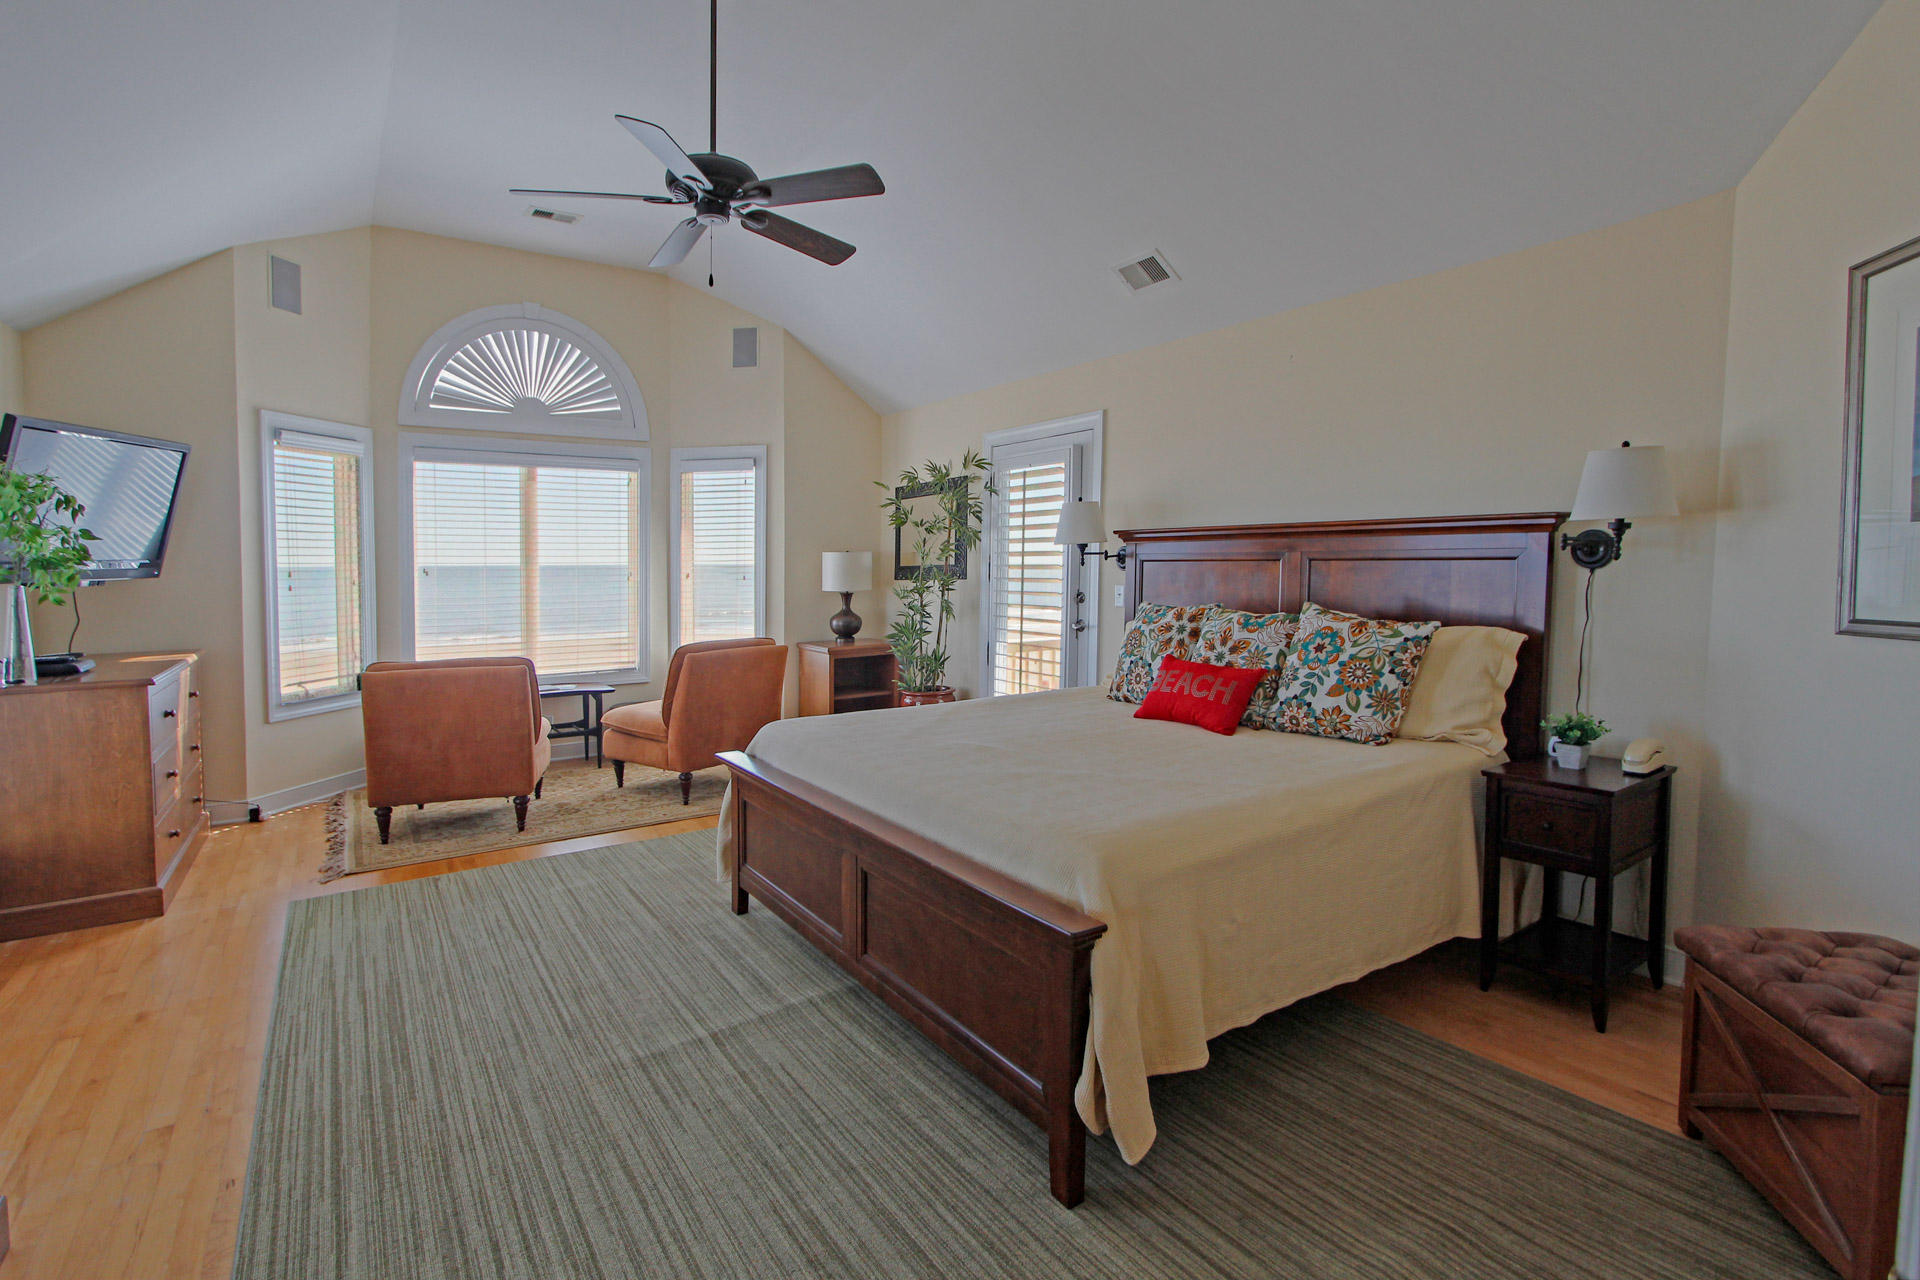 Isle of Palms Homes For Sale - 810 Ocean, Isle of Palms, SC - 15